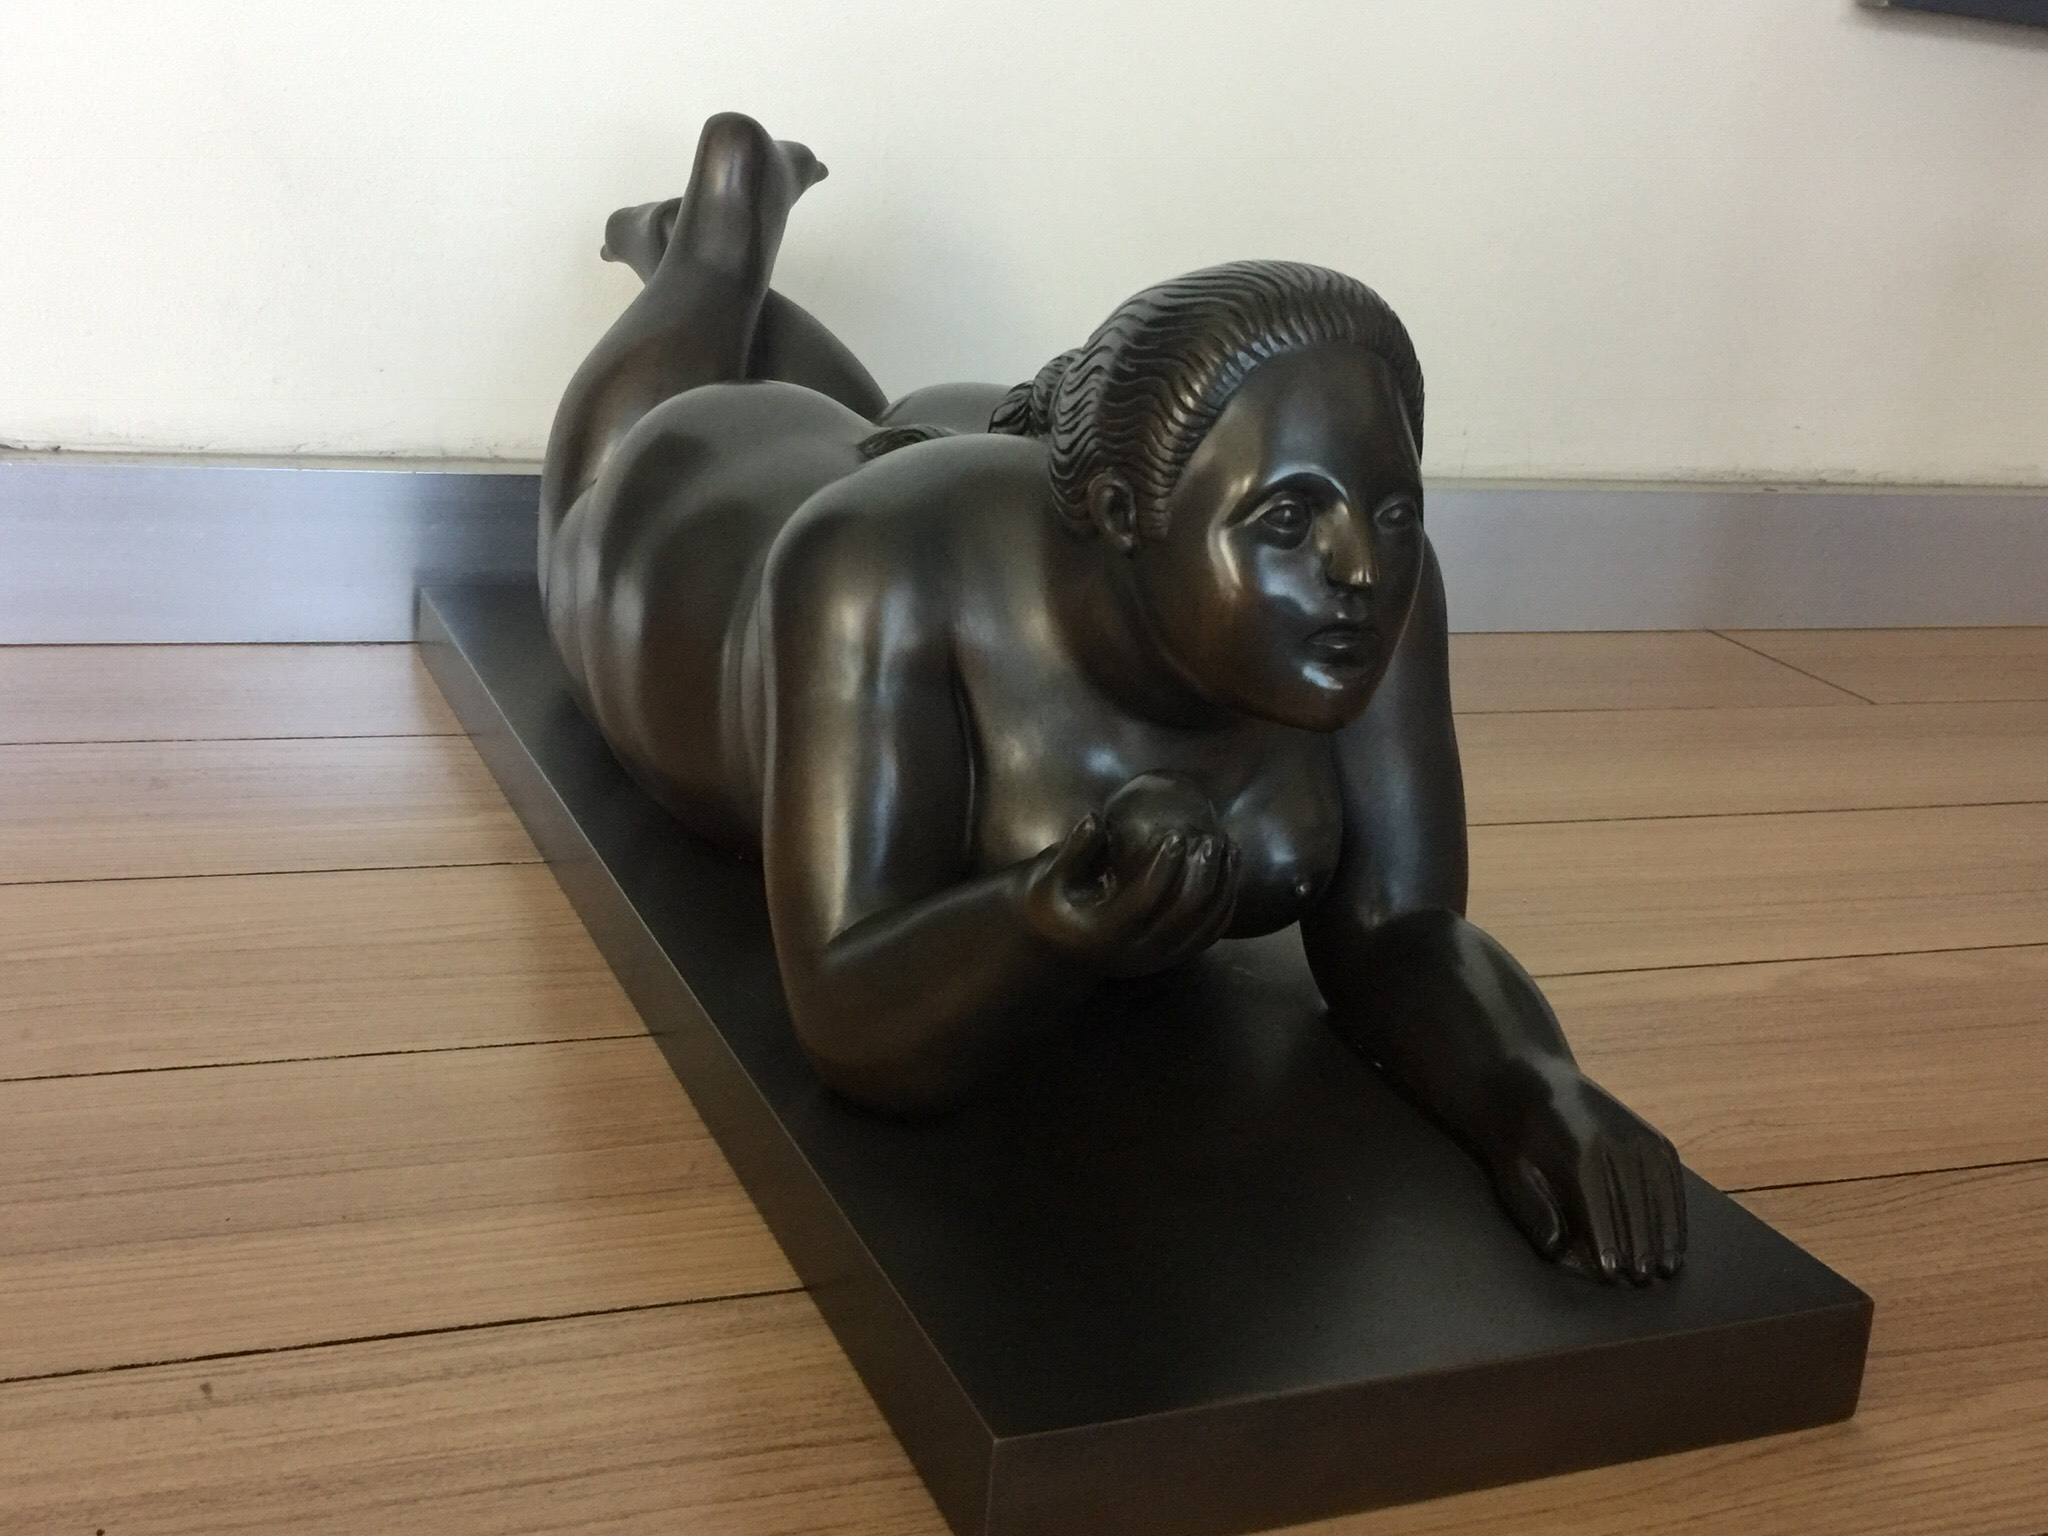 ''Reclining woman with fruit'', Tecnica: Bronce, Tamaño: 10 x 25.5 x 8.5 pulgadas, Año: 1995, Provenance: Private Collection Panama Yaco Garcia Arte Latinoamericano